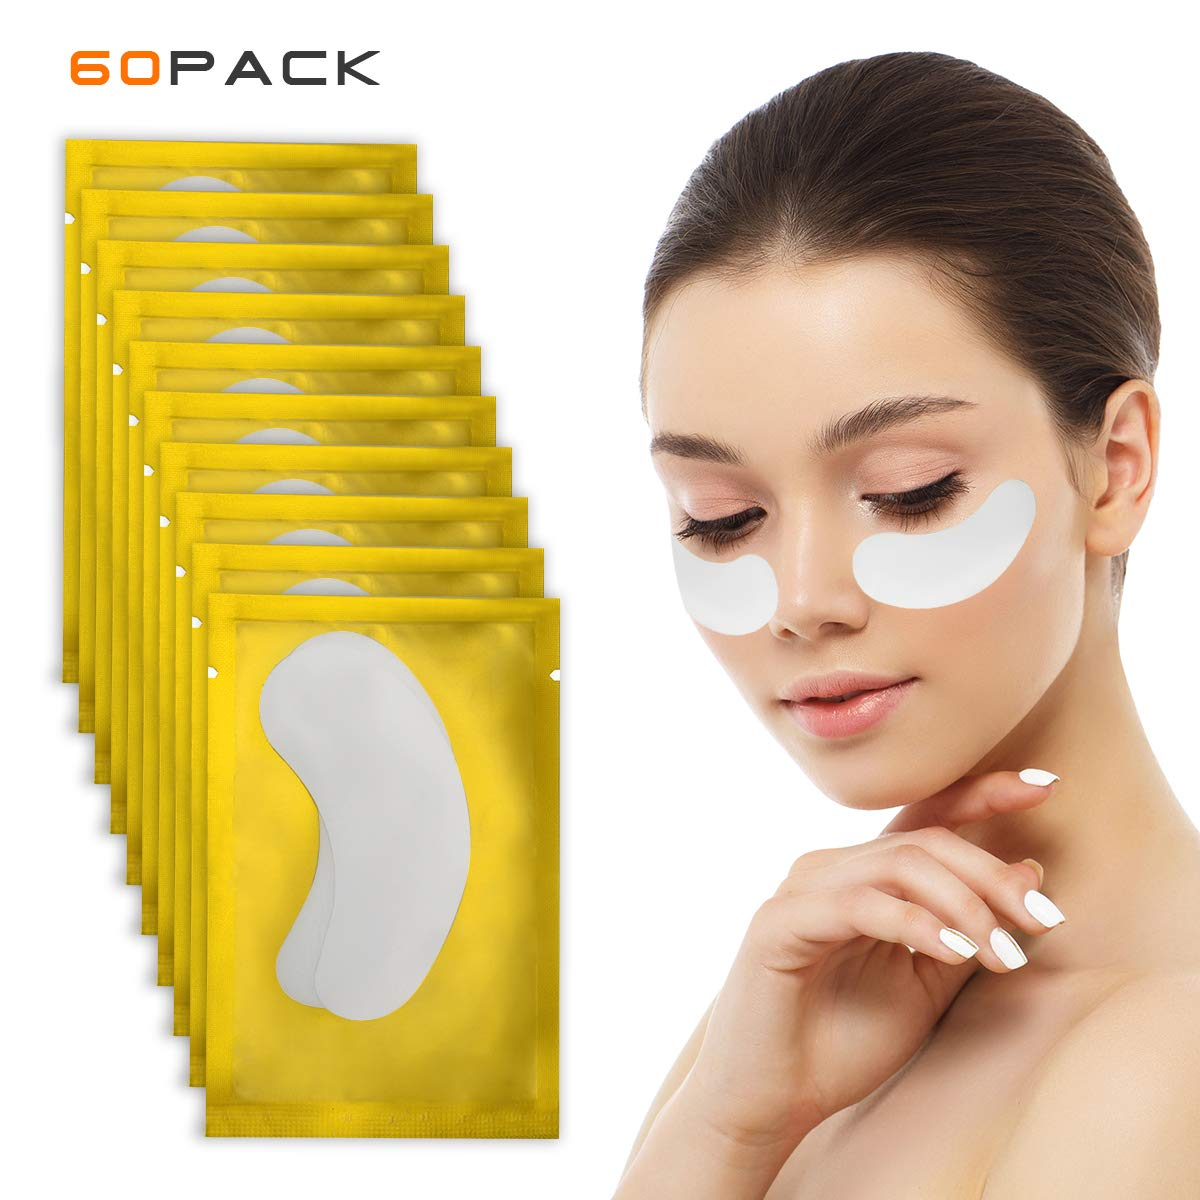 cde02fa0c81 Amazon.com: 60 Pairs Eye Pads for Lash Extensions, Lint Free Under Eye Gel  Patches, Eyelash Extensions Pads by Ahier: Beauty